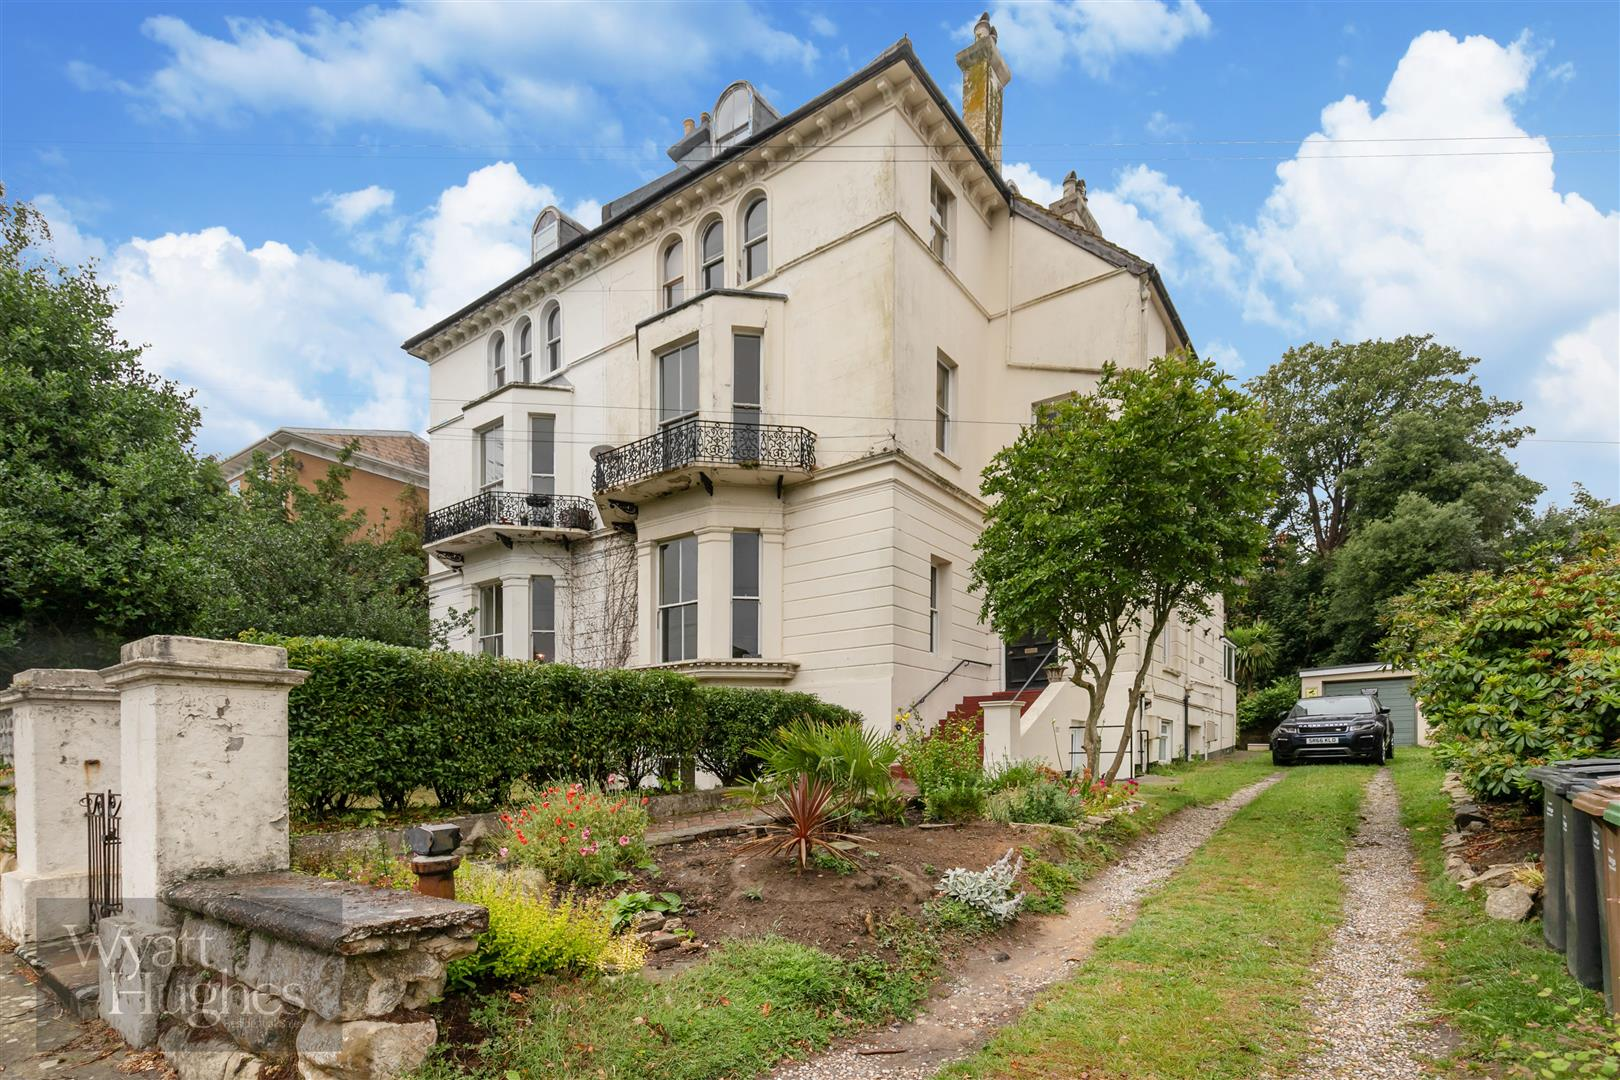 2 bed flat for sale in Pevensey Road, St. Leonards-On-Sea, TN38